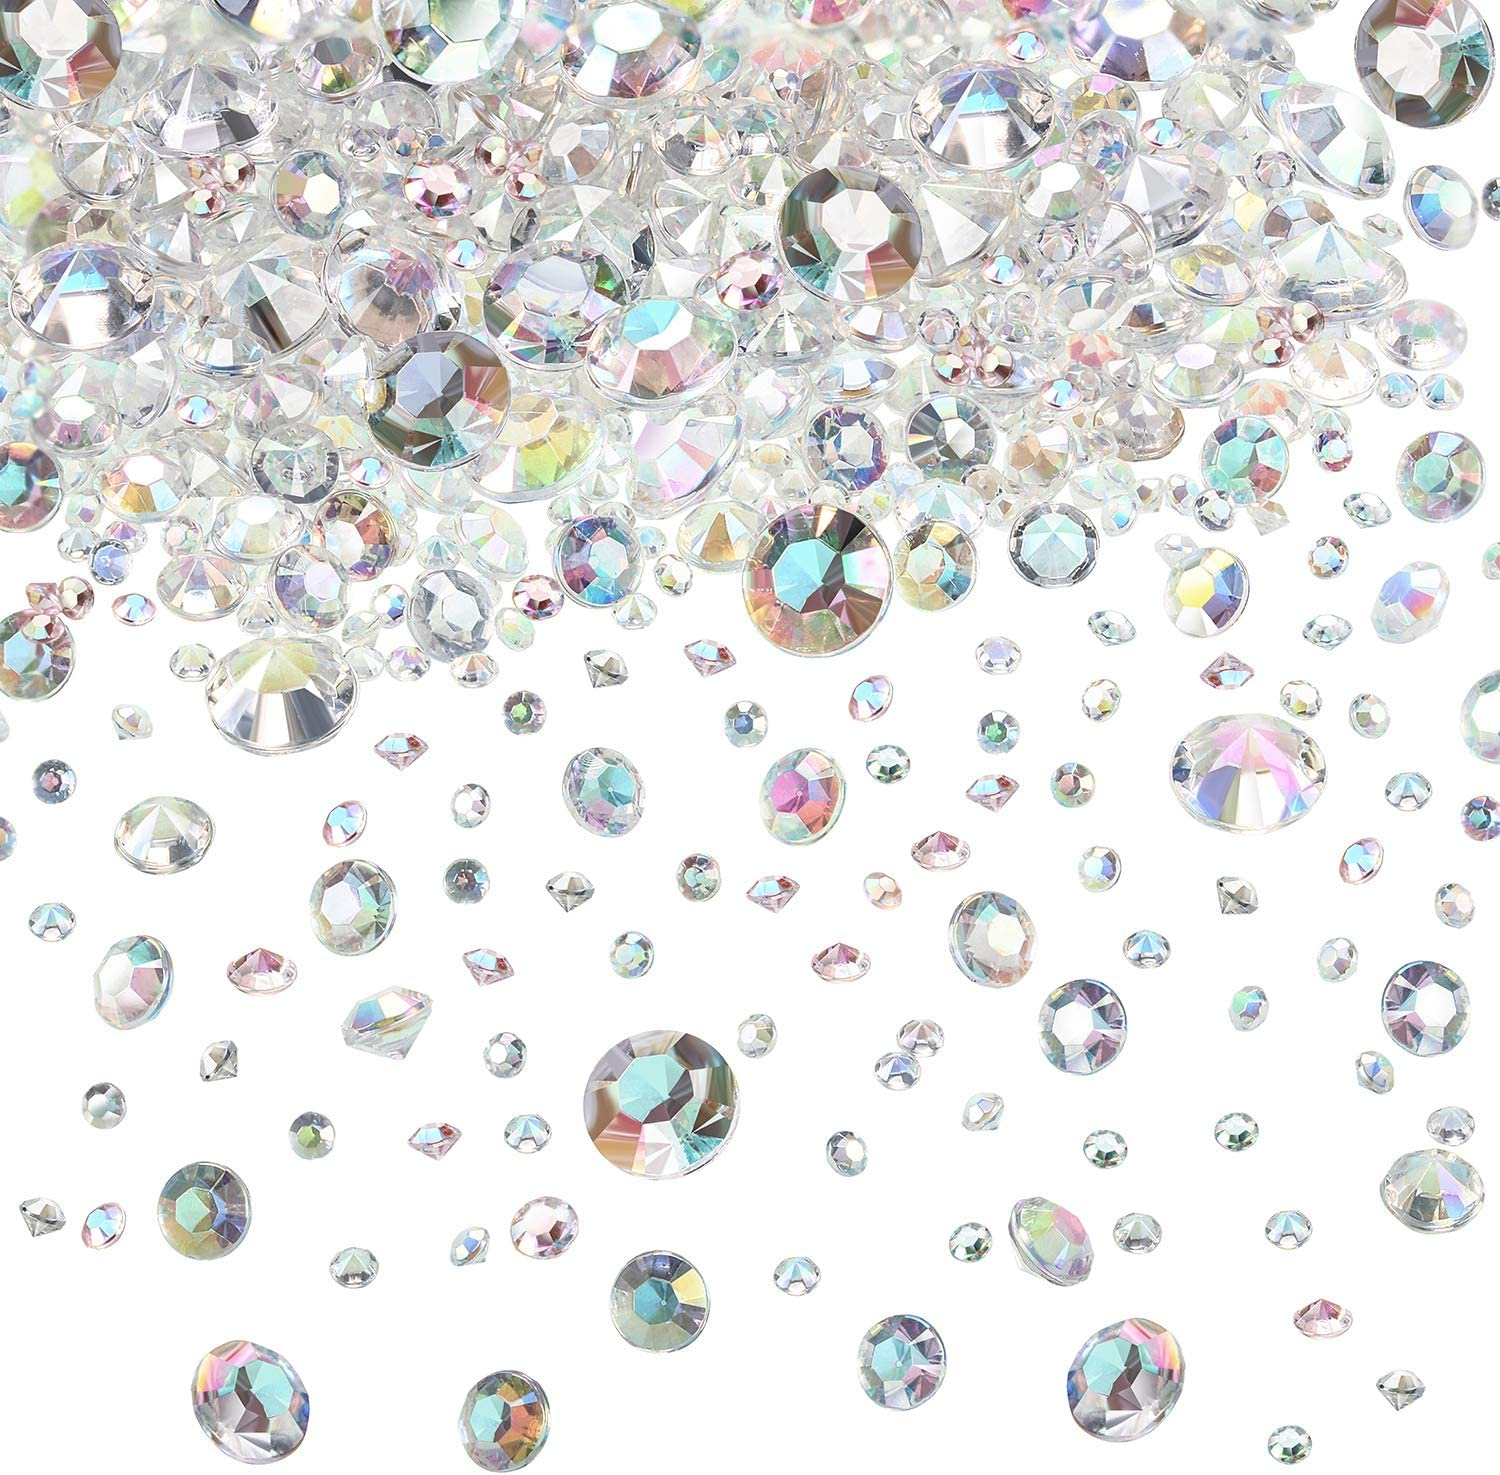 Hicarer 4000 Pieces Table Confetti 3 Sizes Wedding Crystals Acrylic Diamonds Rhinestones Vase Fillers for Birthday Baby Shower Party Tables (Crystal AB)